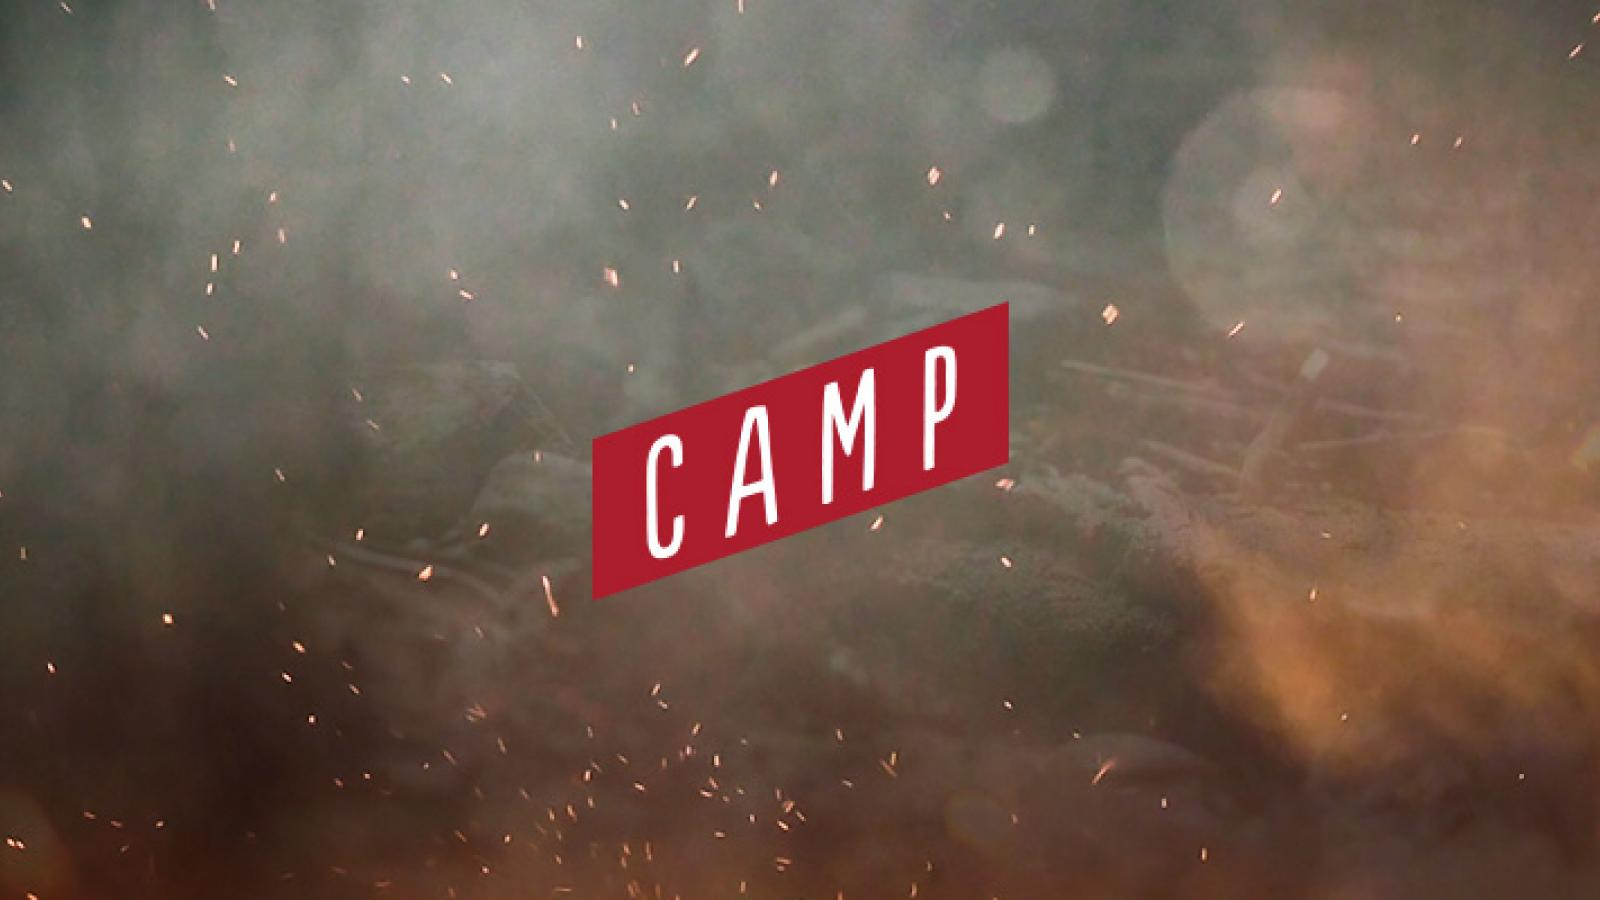 CAMP Festival: Creative Technology, Art and Design